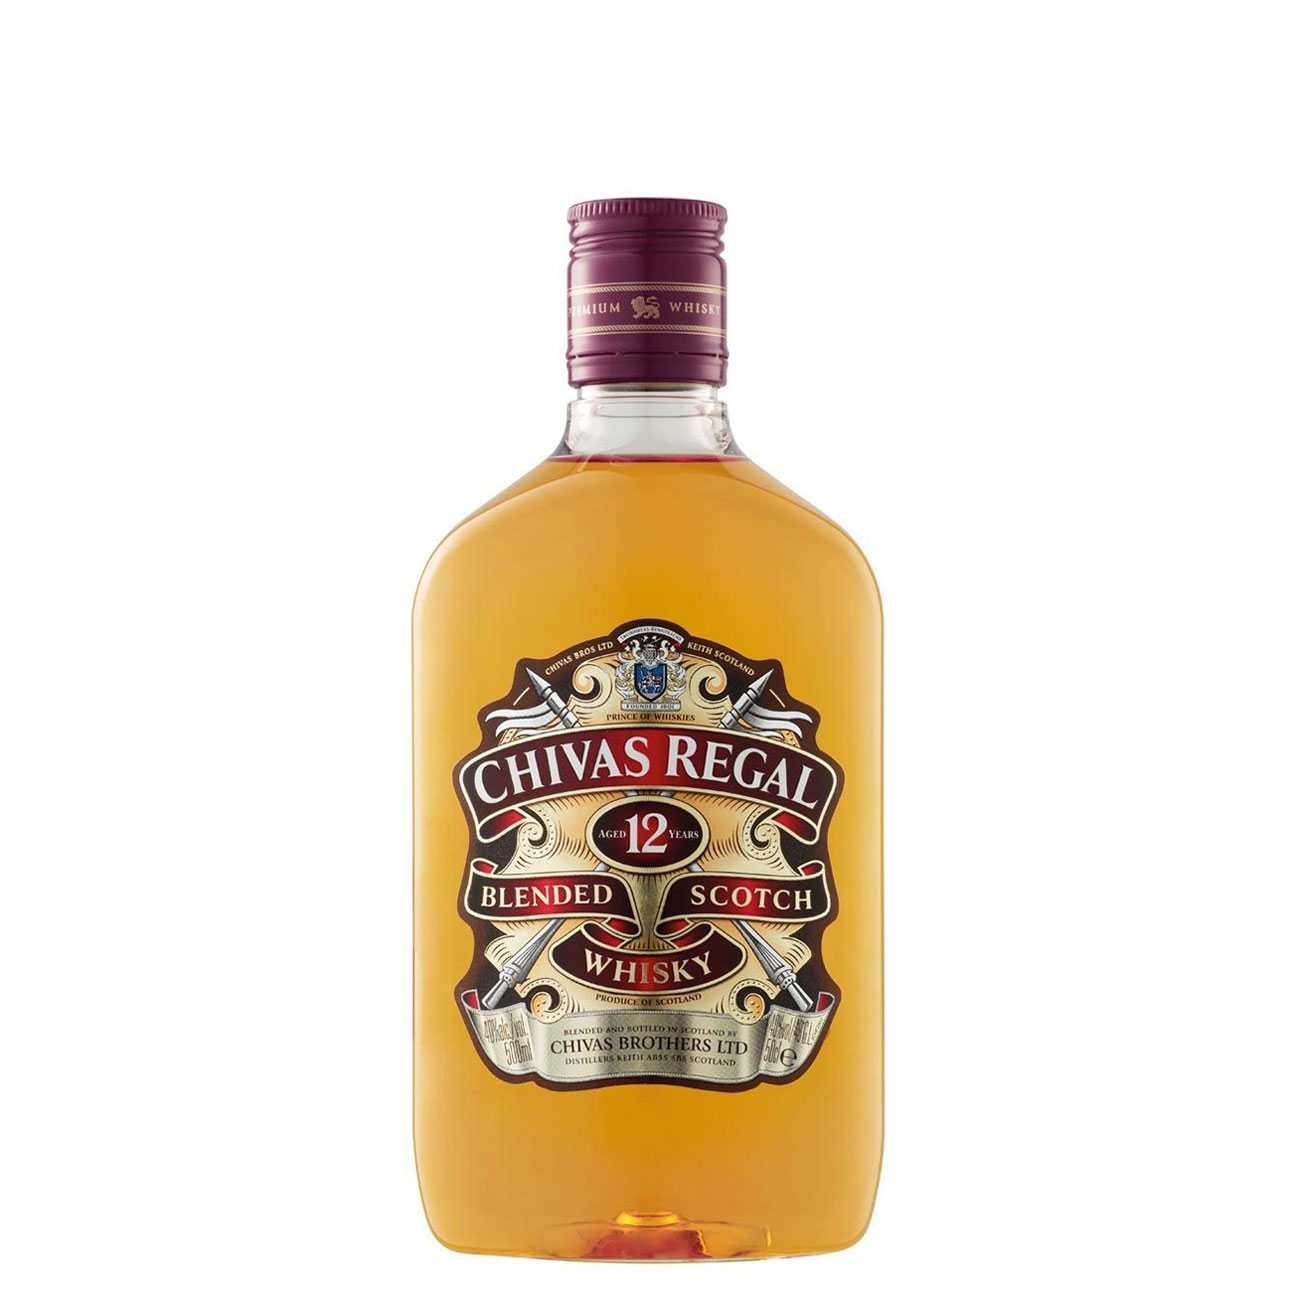 Whisky scotian, 12 YEAR OLD 500 ML, Chivas Regal